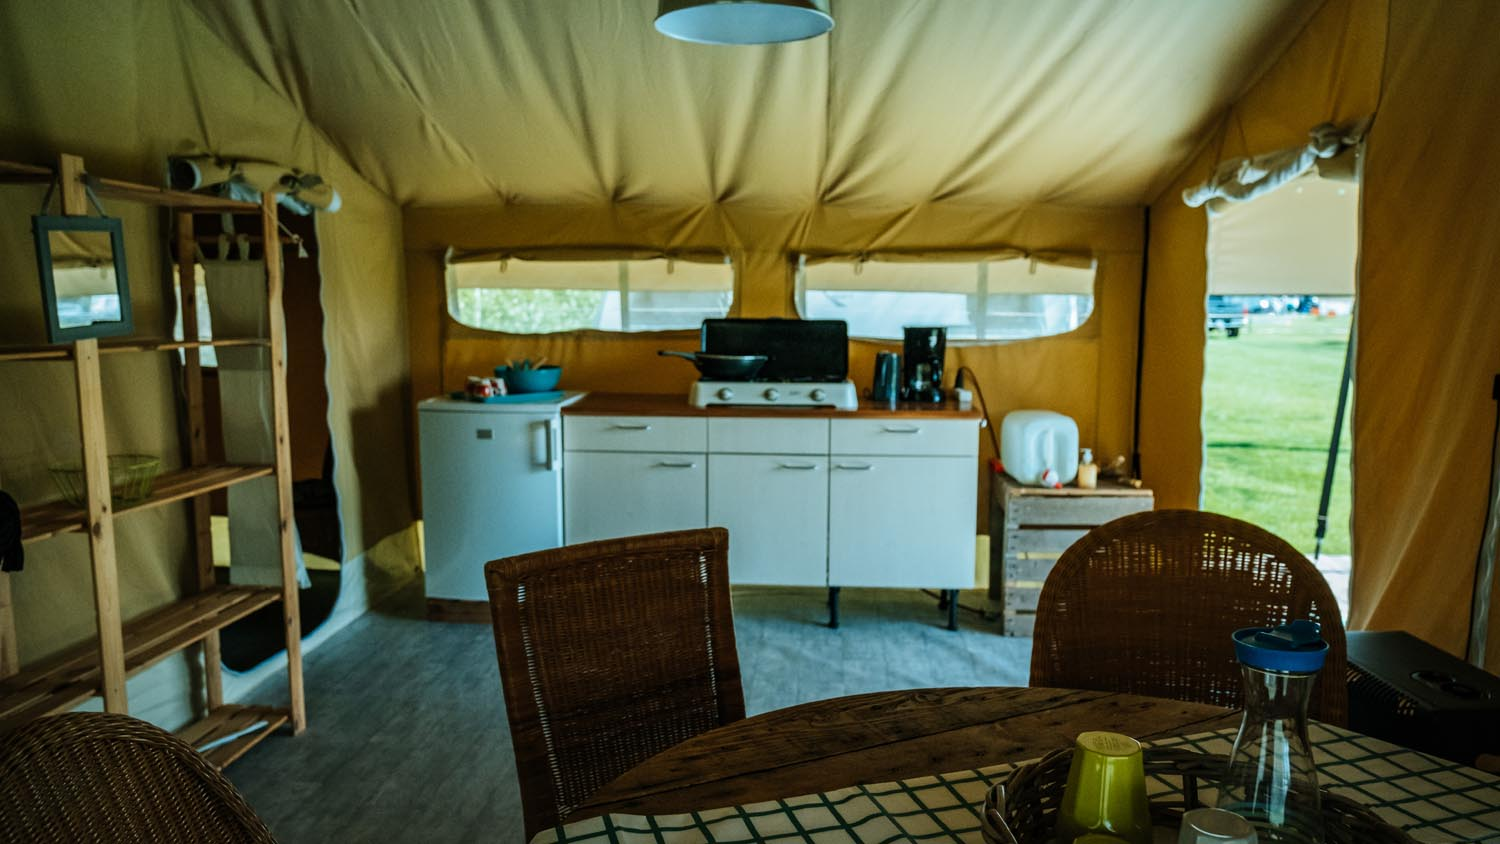 Zoover_Camping_Mebel-9556.jpg